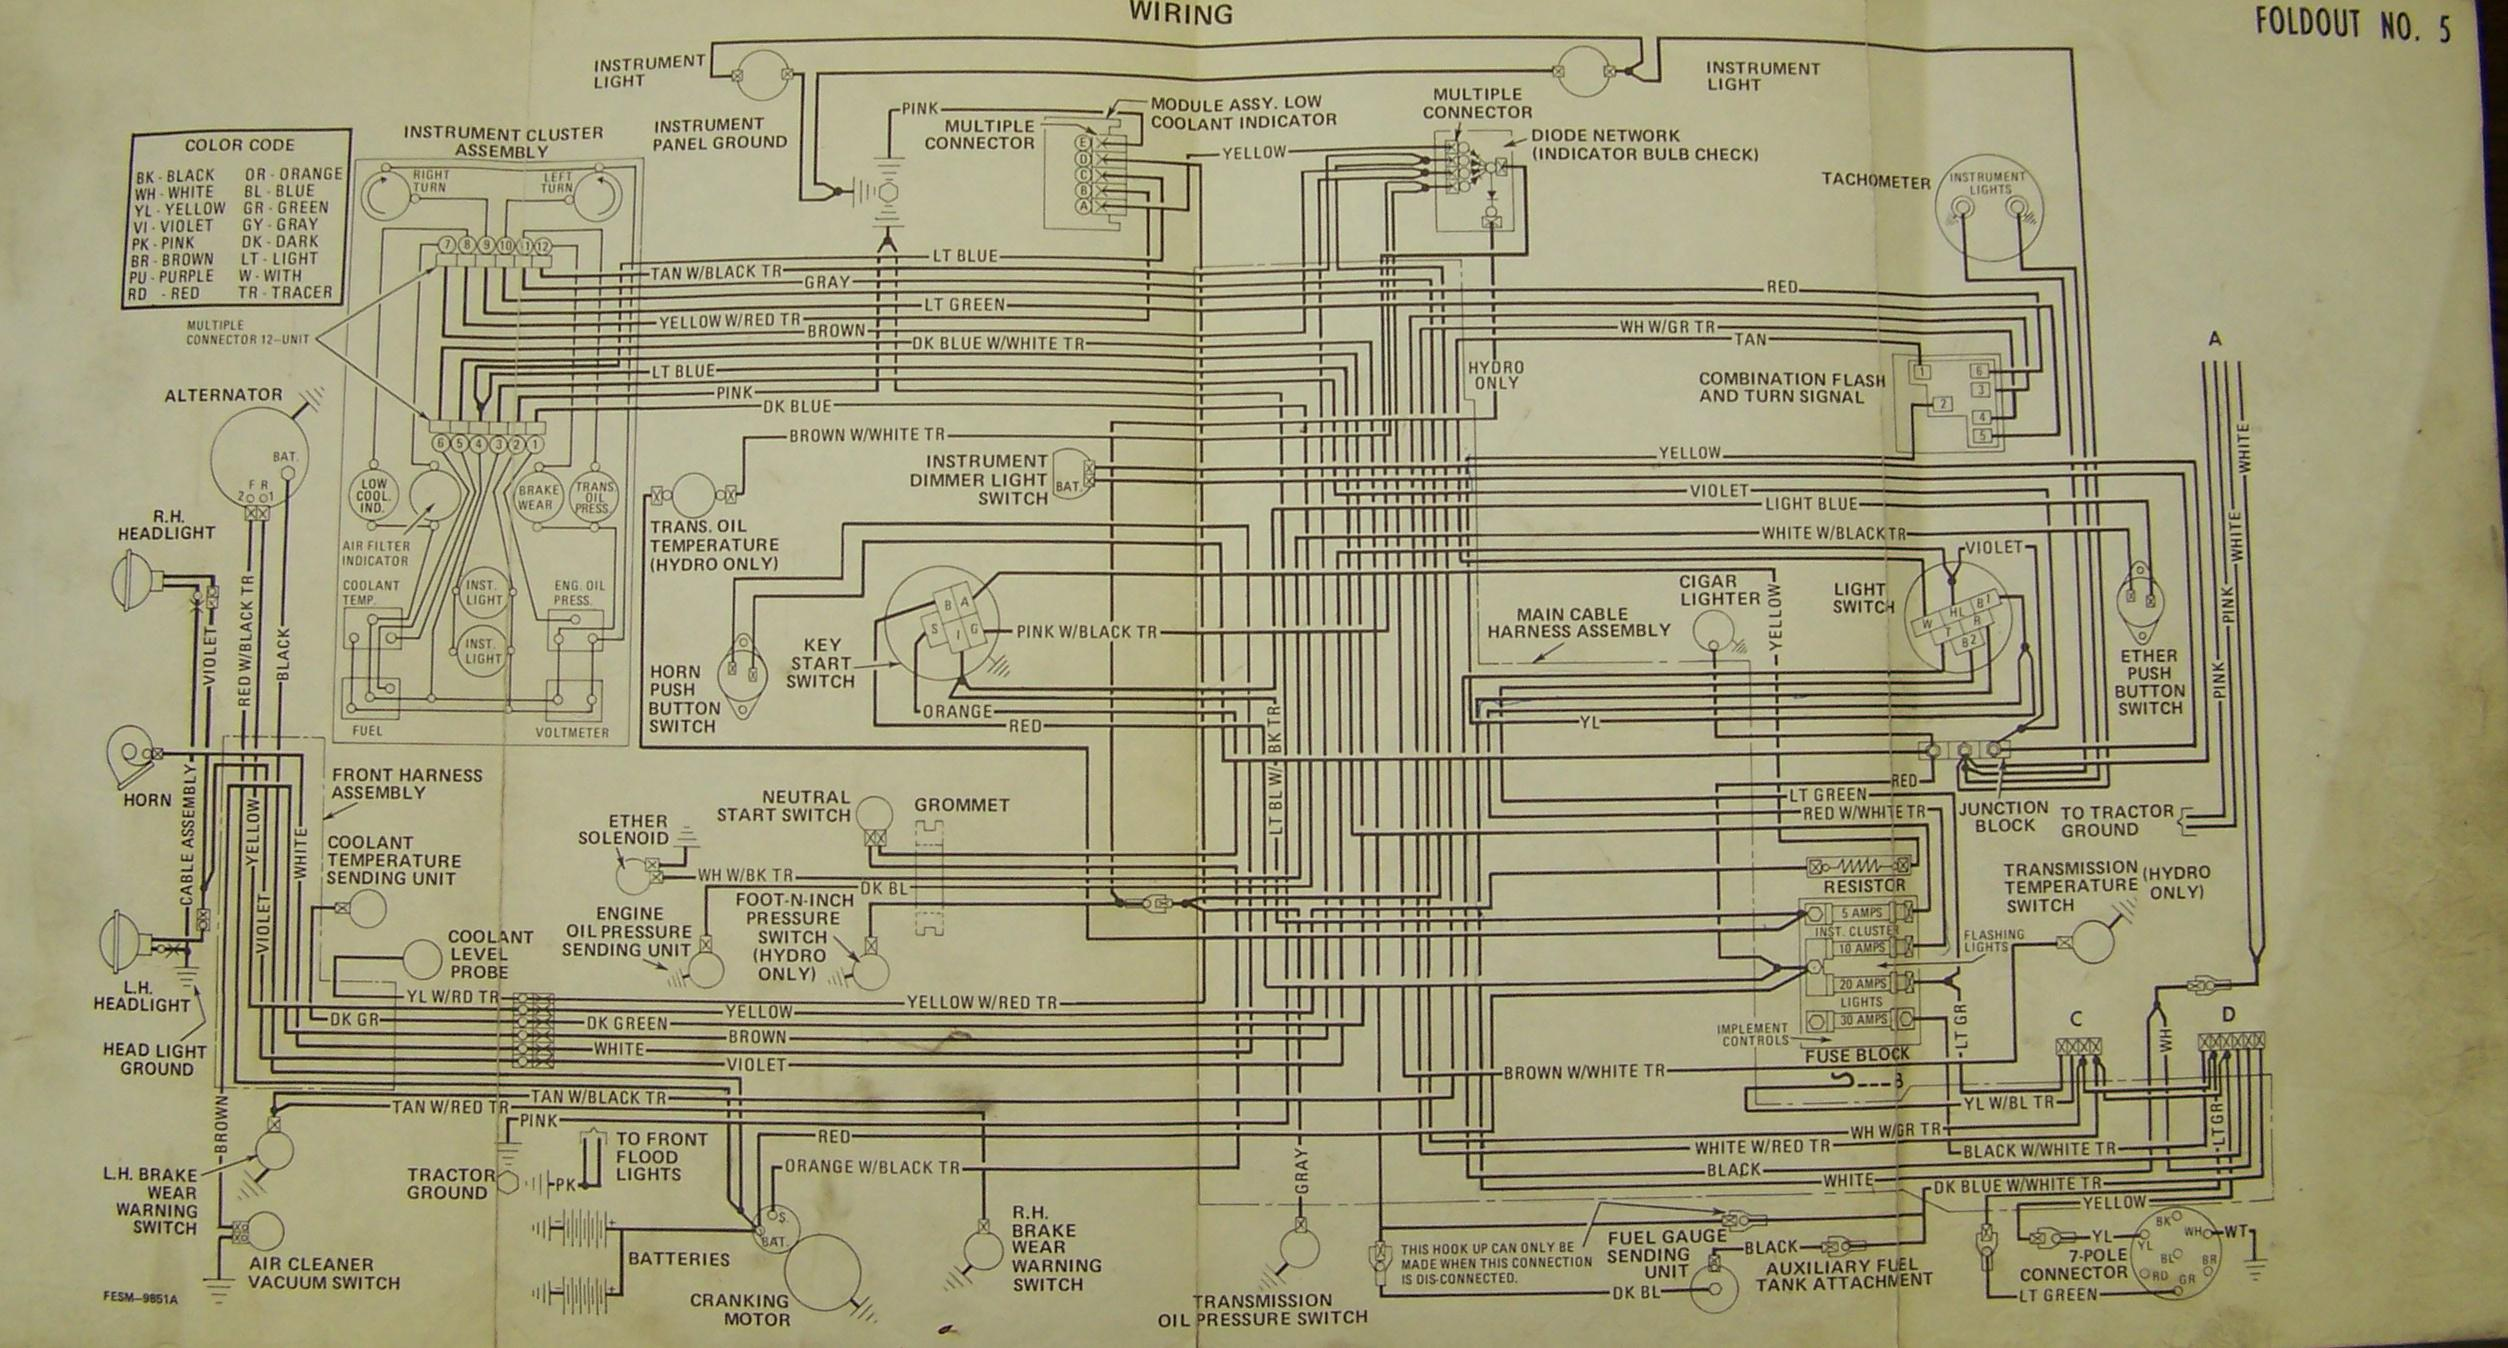 [DIAGRAM_4PO]  Case Ih 585 Wiring Diagram - wiring diagrams schematics | Ih 585 Wiring Diagram |  | wiring diagrams schematics